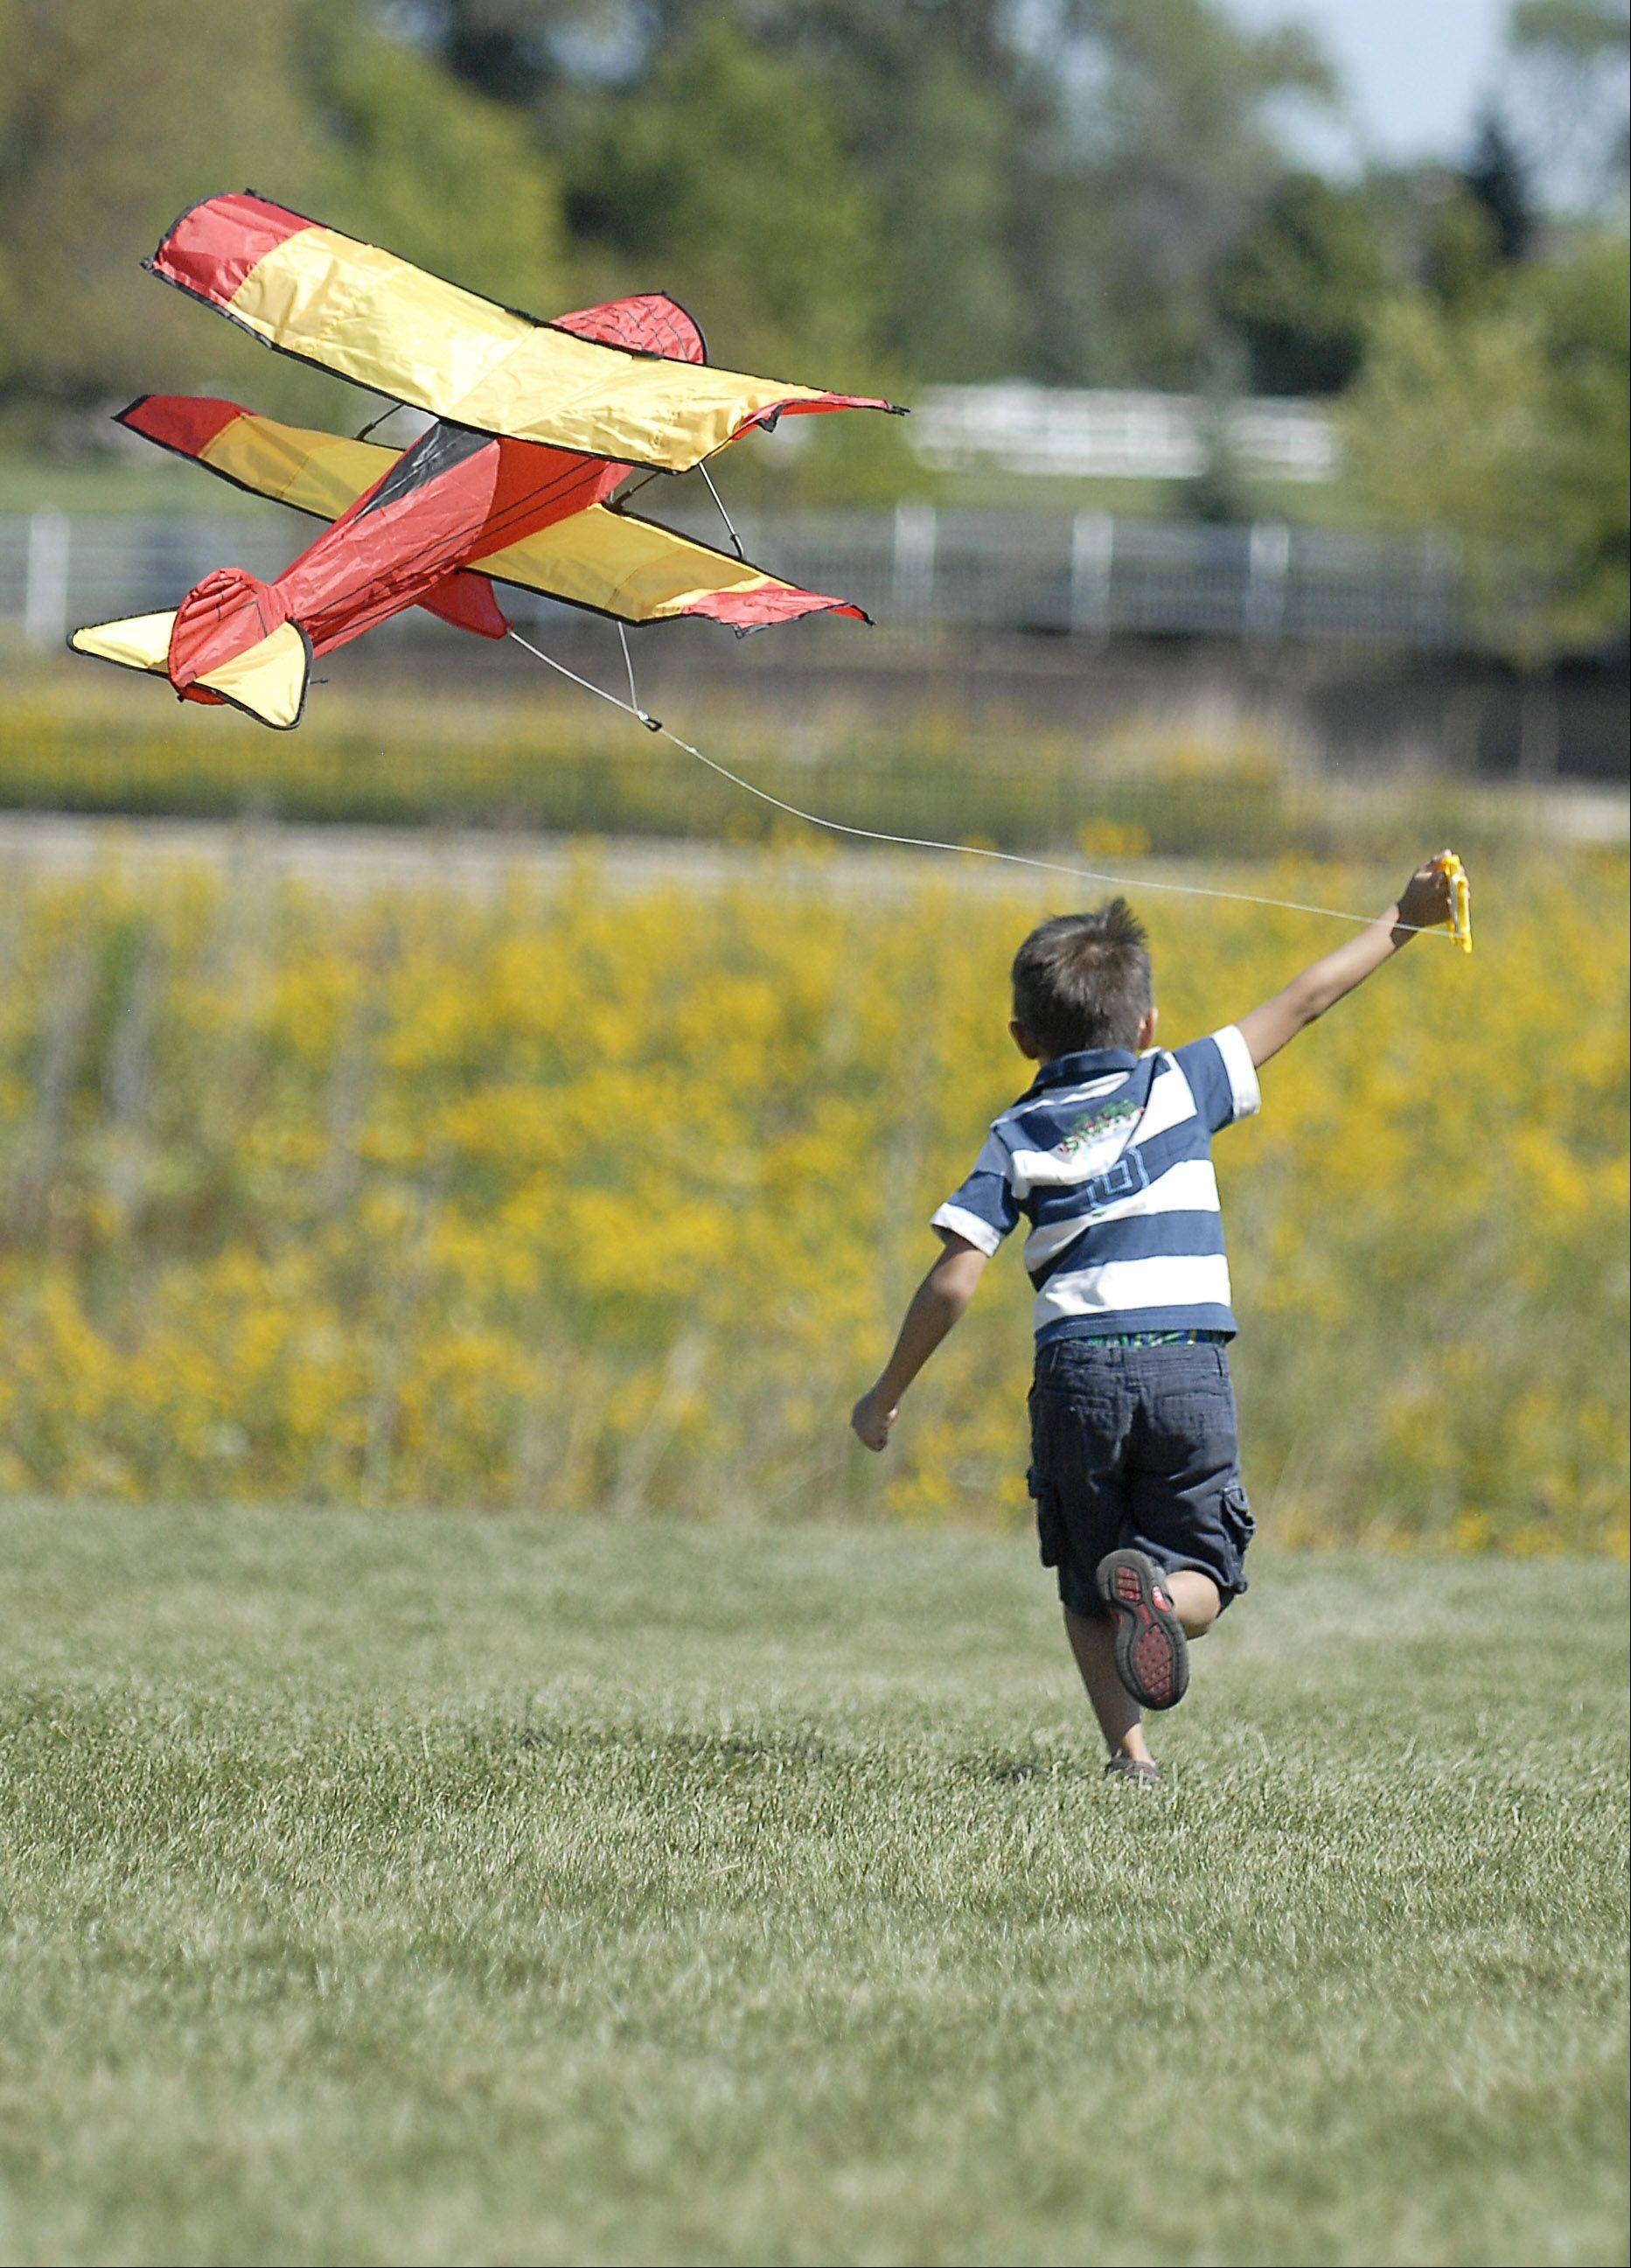 Lucas Oldham, 6, of Geneva has lift off with his biplane kite during Geneva Park District's annual Kite Festival at Peck Farm Park in September. Lucas attended the event with his father, Michael, and mother, Tania, for the first time.